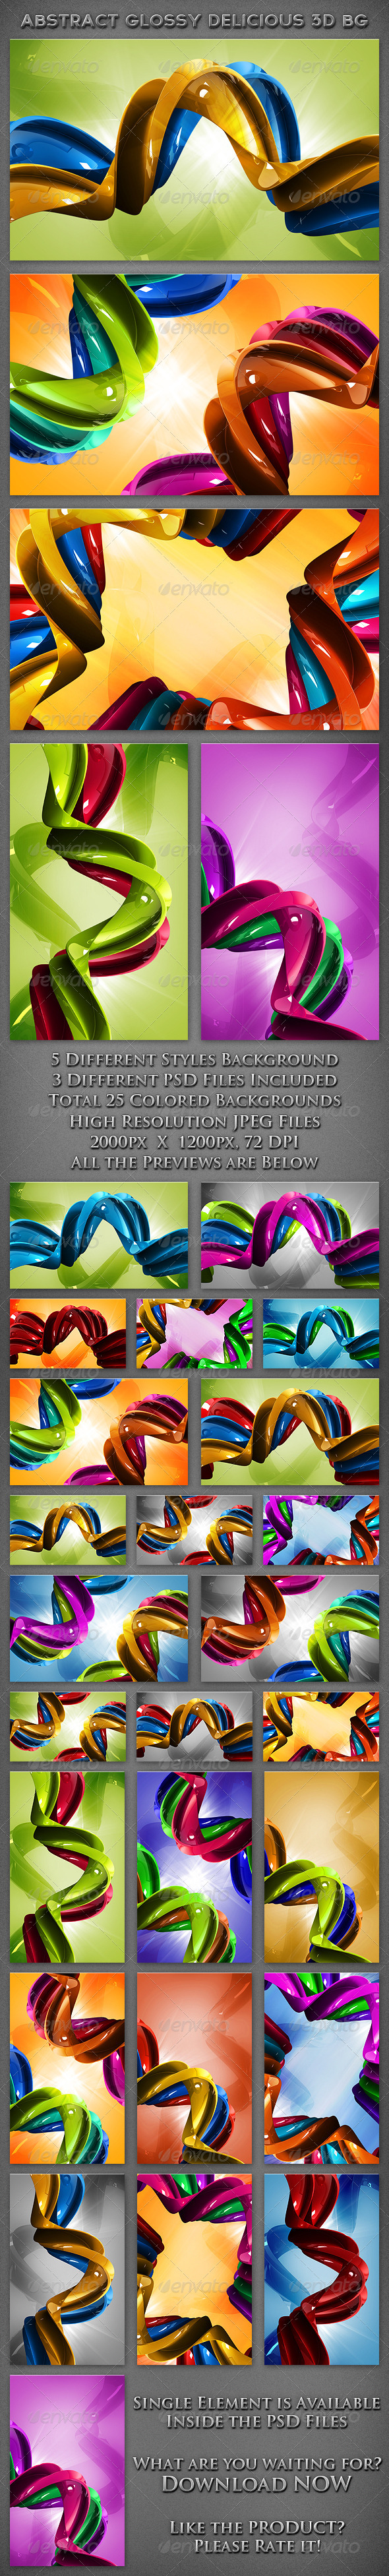 Abstract Glossy 3D Colorful Backgrounds - Abstract Backgrounds